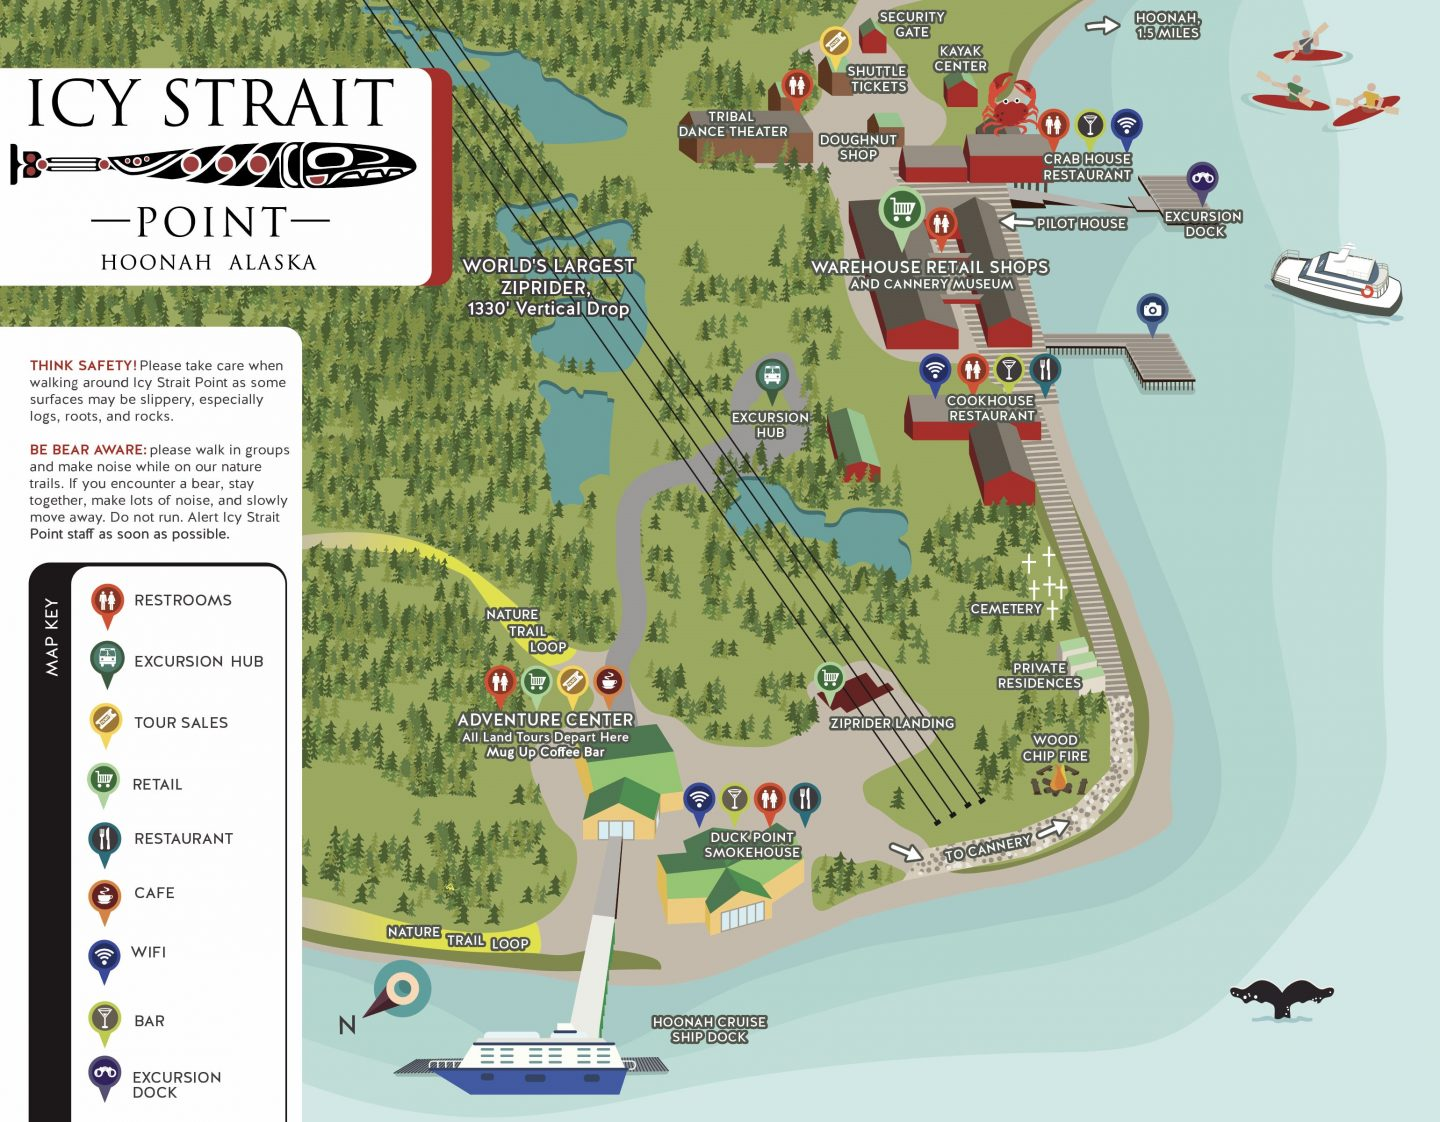 Icy Strait Point Alaska Map.About Us Icy Strait Point Icy Strait Point